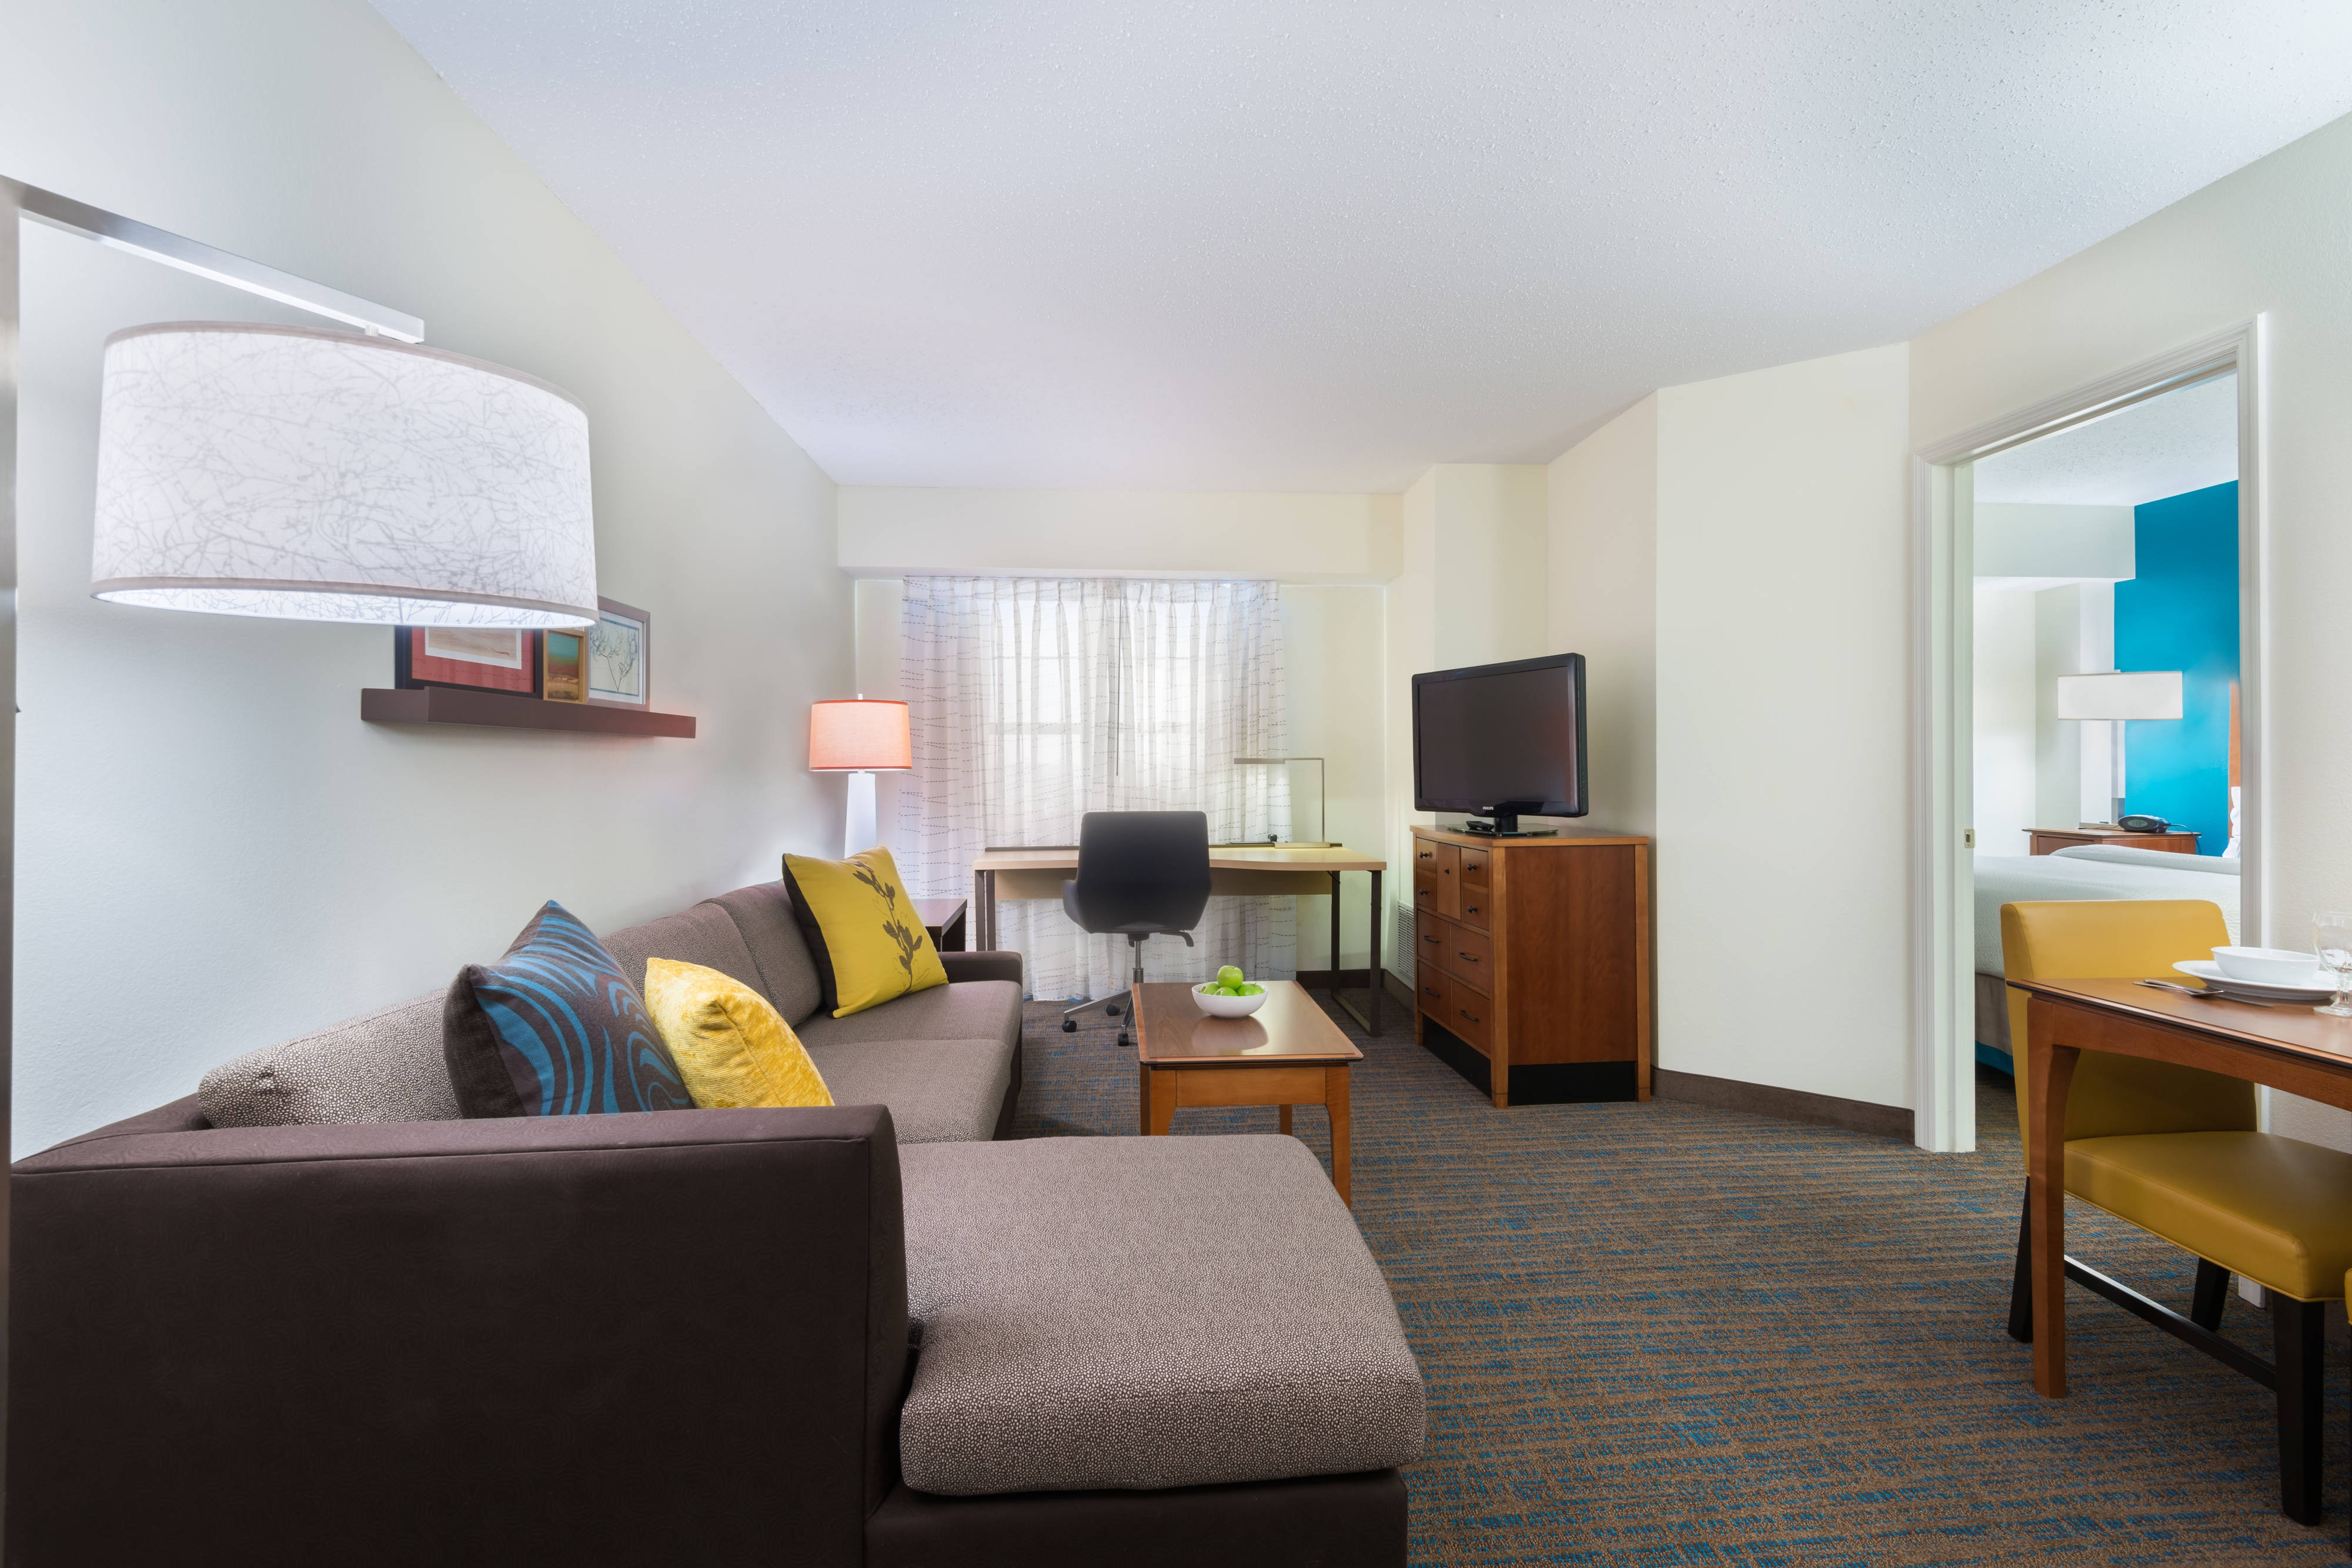 suites residence hotels new hor suite stay extended clsc hotel annapolis orleans rooms bwira bedroom in inn md